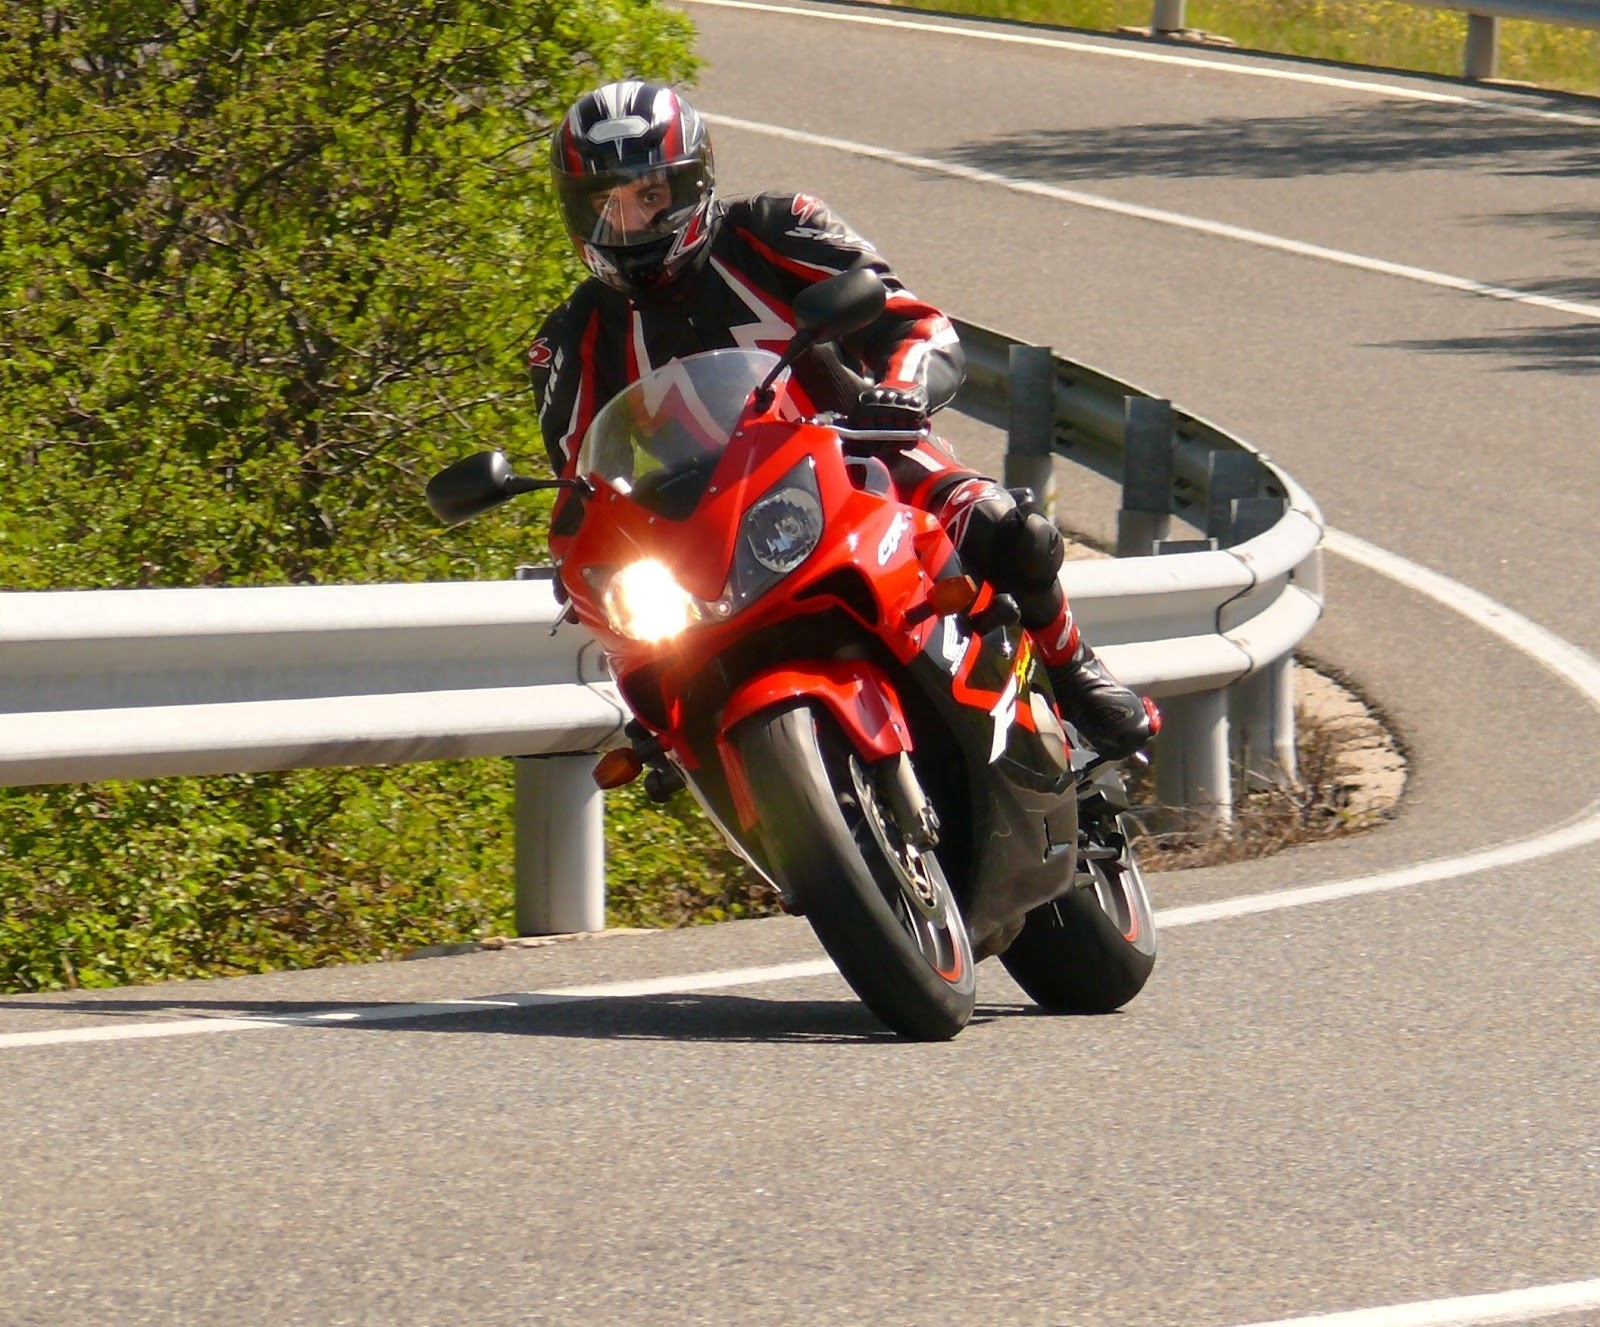 Motorcycle Safety Tips for the Summer